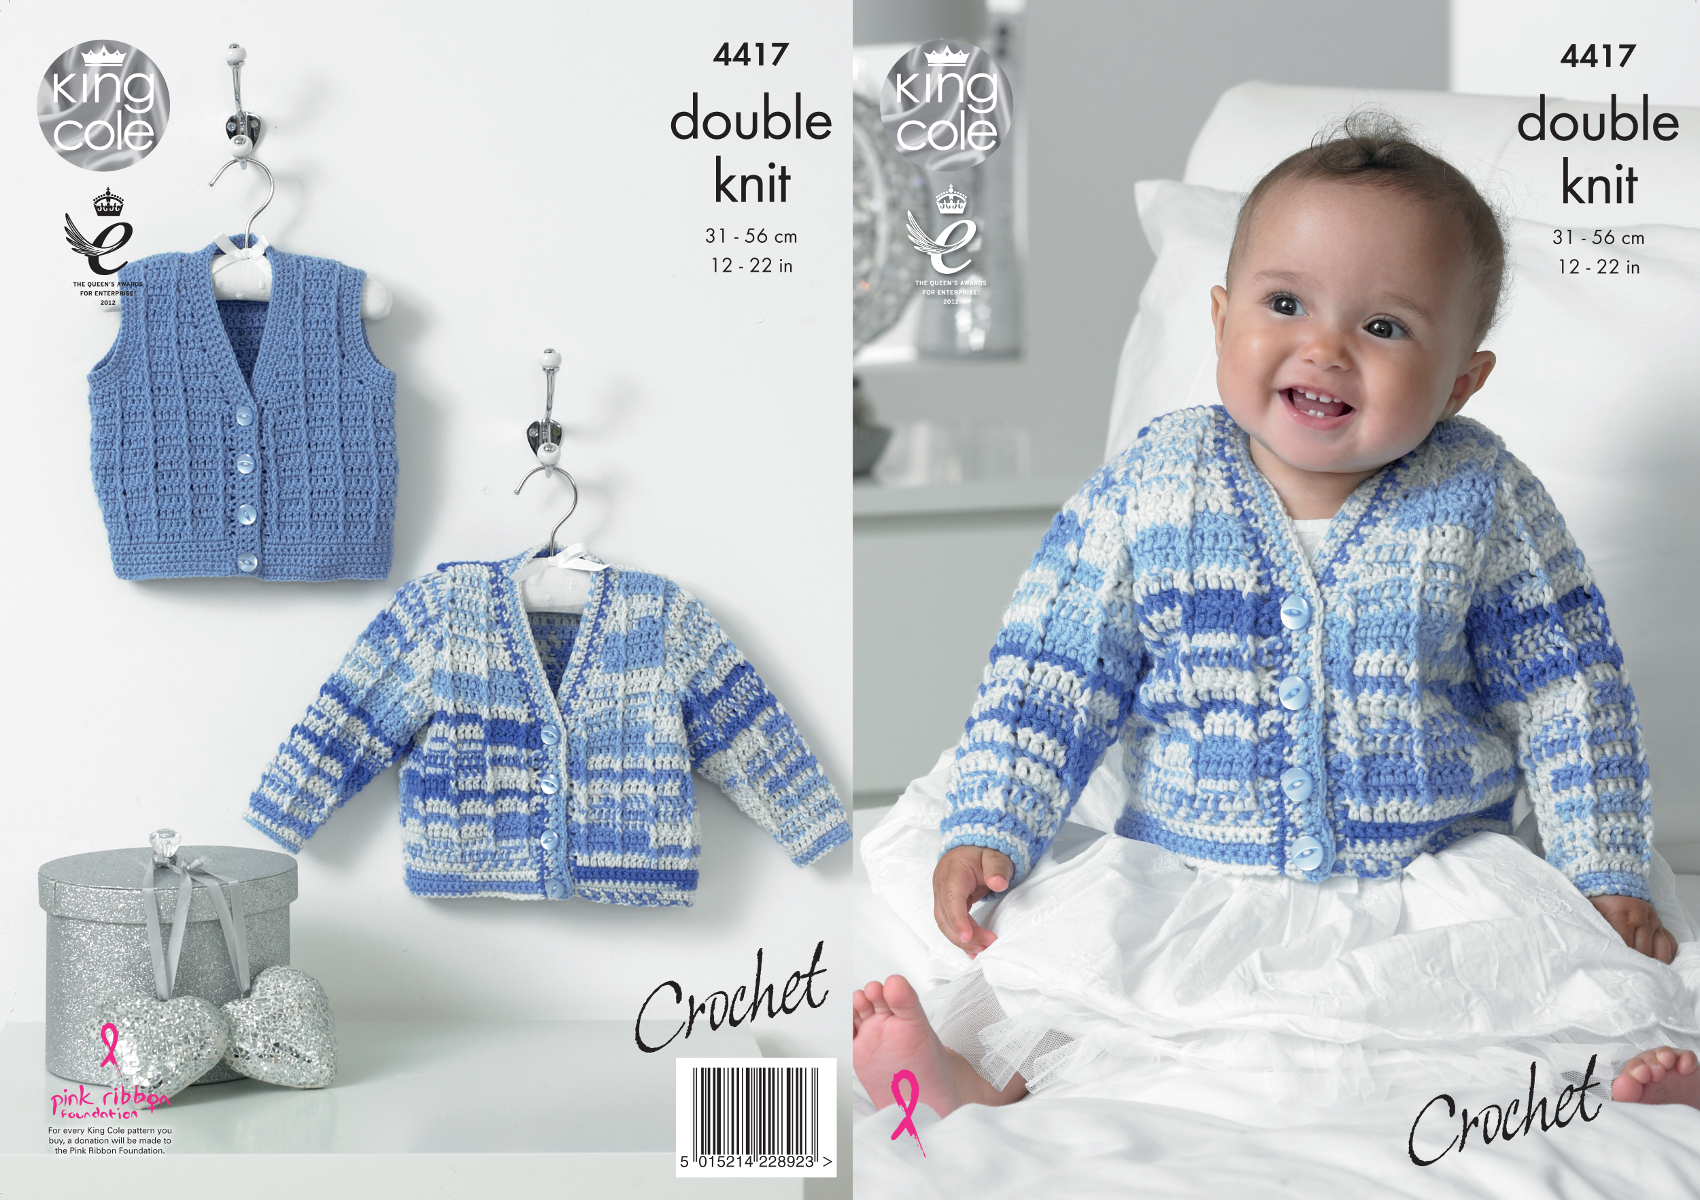 Crochet Patterns King Cole : Details about King Cole Baby Double Crochet Gabarit Pour Crochet Gilet ...